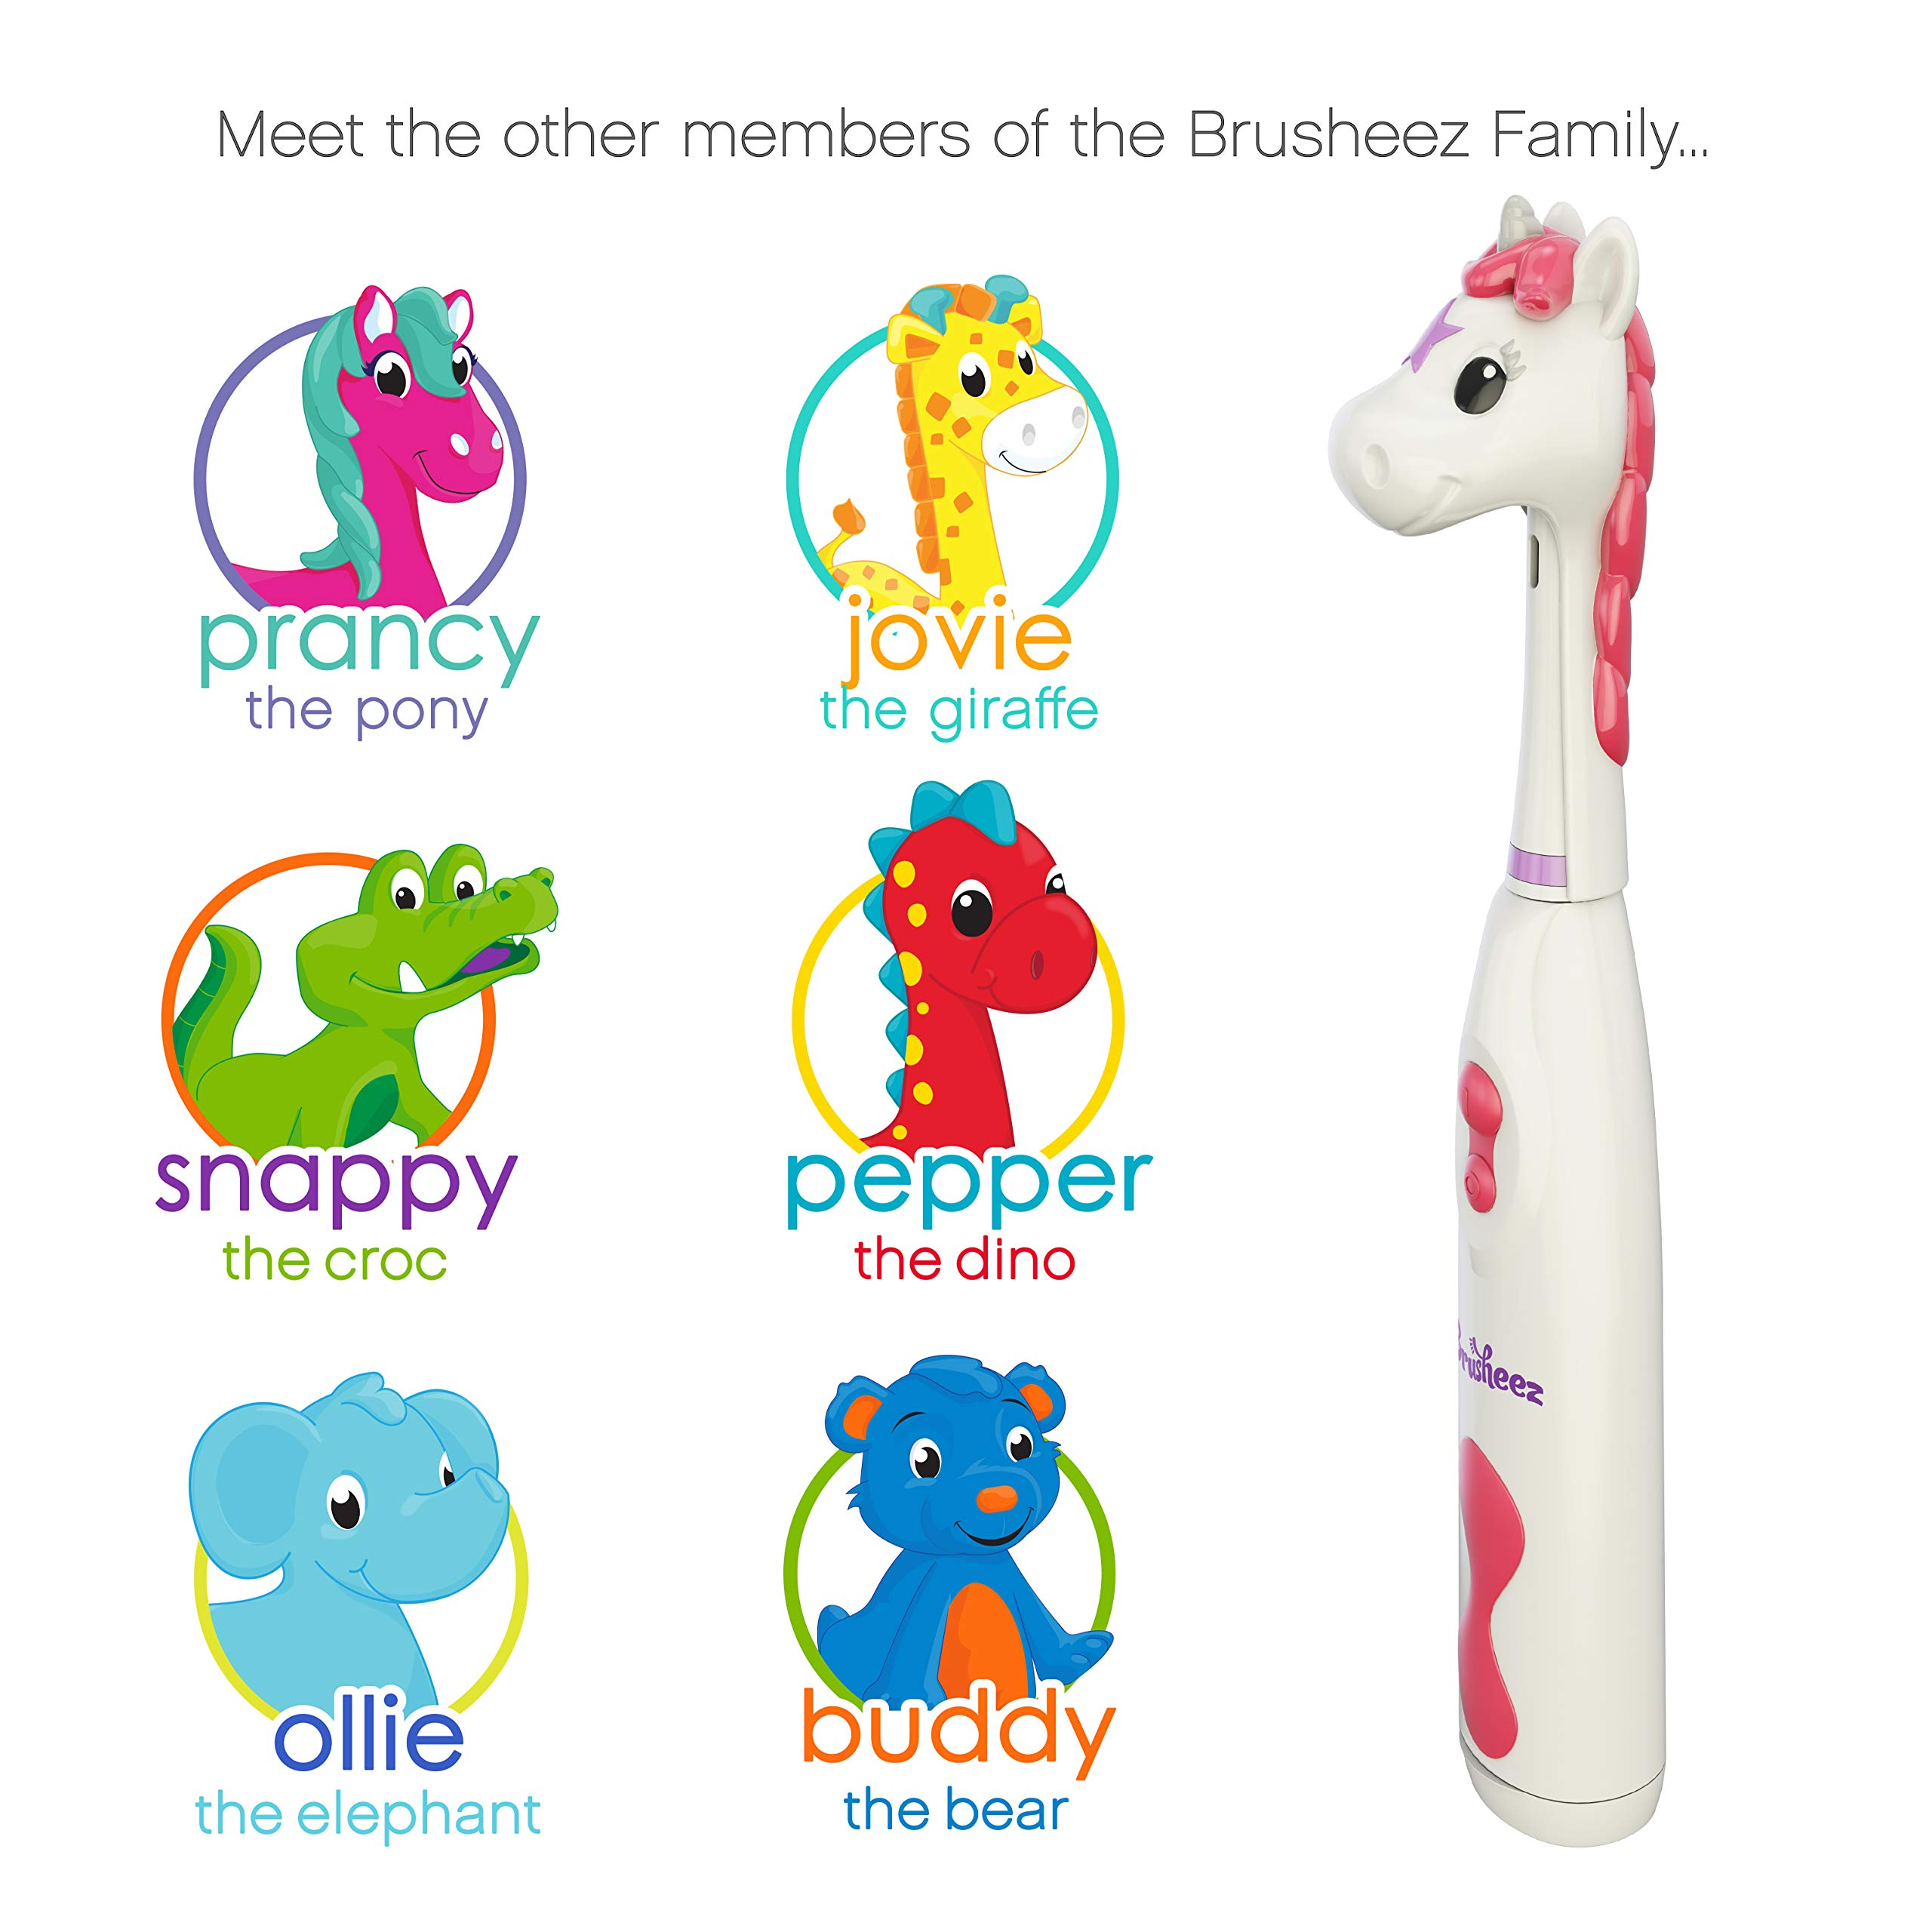 Brusheez Kid's Electric Toothbrush Set - Sparkle the Unicorn - New & Improved with Softer Bristles, Easy-Press Power Button, 2 Brush Heads, Cute Animal Cover, Sand Timer, Rinse Cup & Storage Base by Brusheez (Image #5)